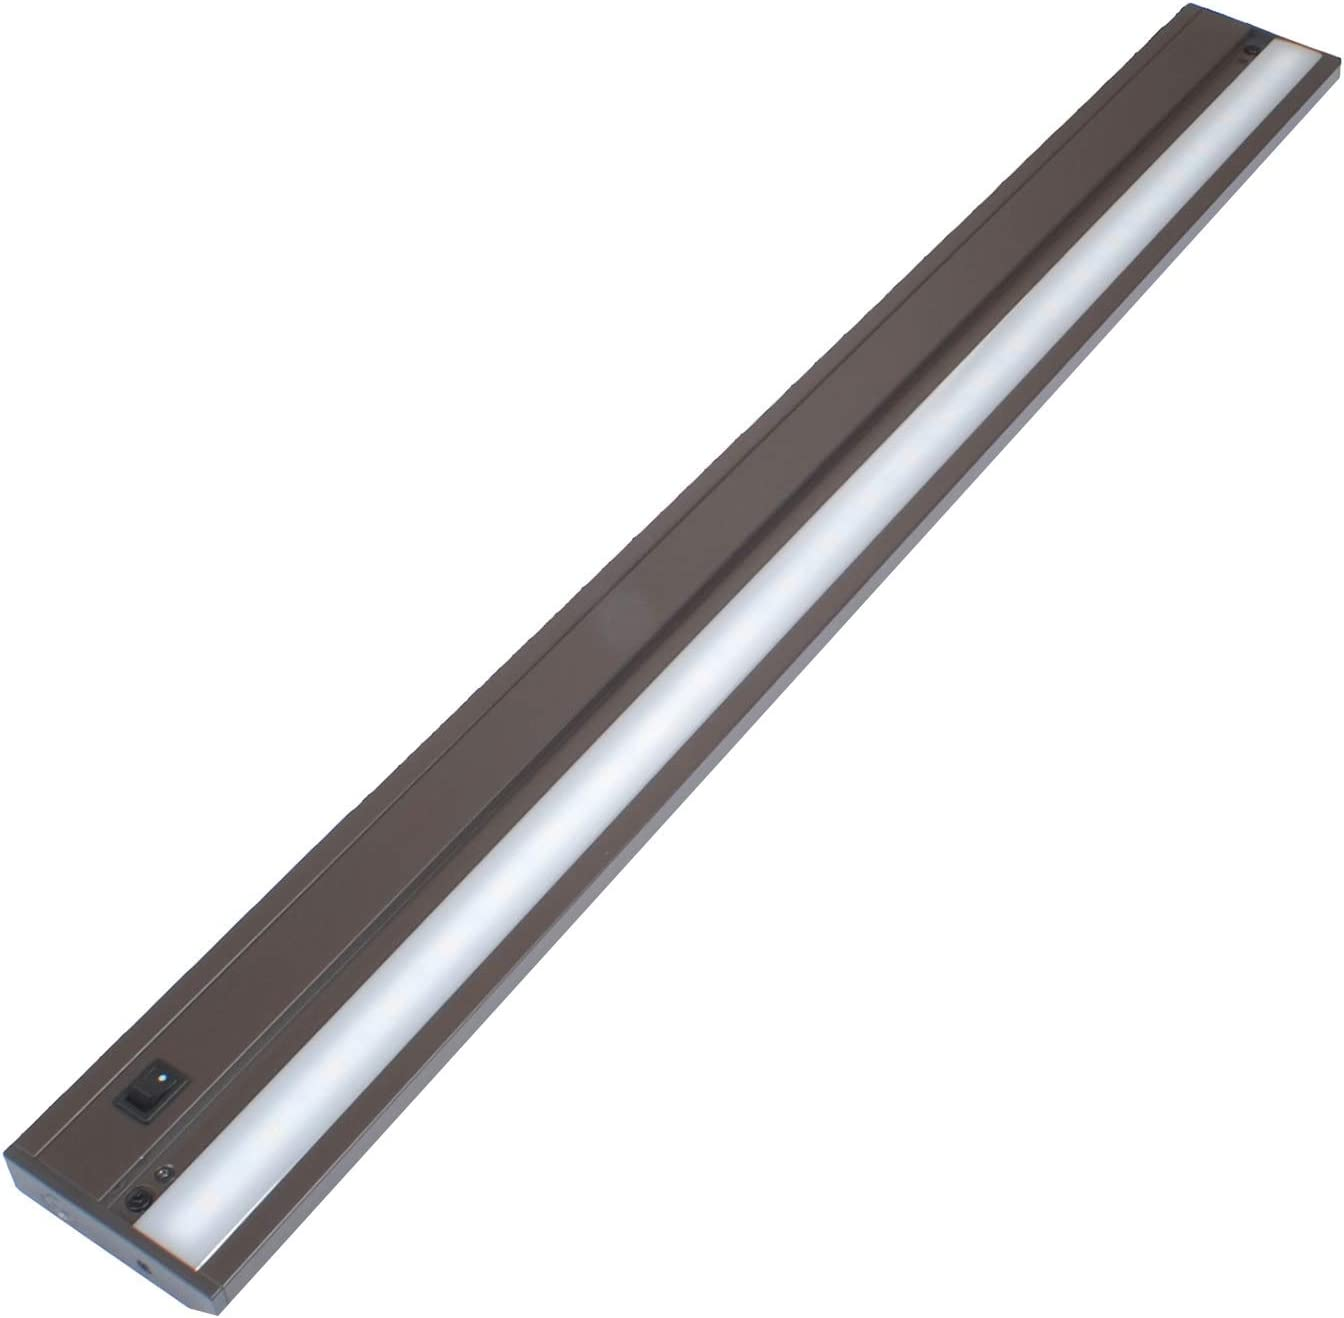 LED Under Cabinet Lighting, 10 Watt, 658 Lumens, 32 inches, 4000K, Hardwired or Plug in, Dimmable, Bronze Finish, ETL & Energy Star Listed, T3-L800BD01-BZ-840